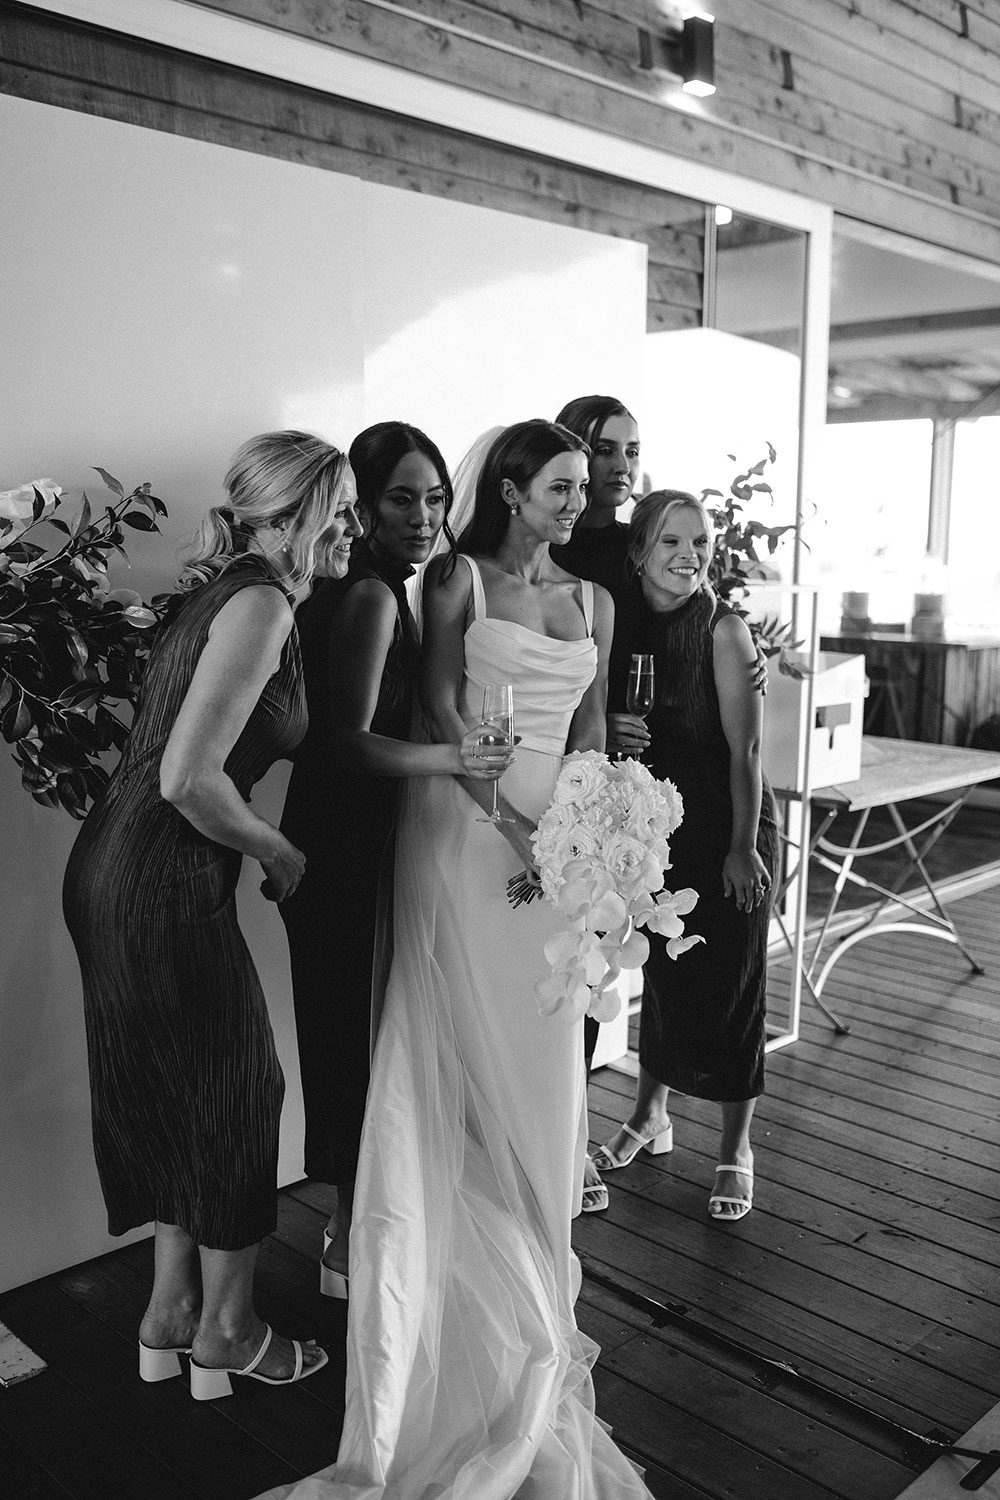 Bride wearing NZ Bespoke Bridal Gown made of silk faile with cowl bodice and detachable overskirt by Vinka Designs - black and white with bridesmaids